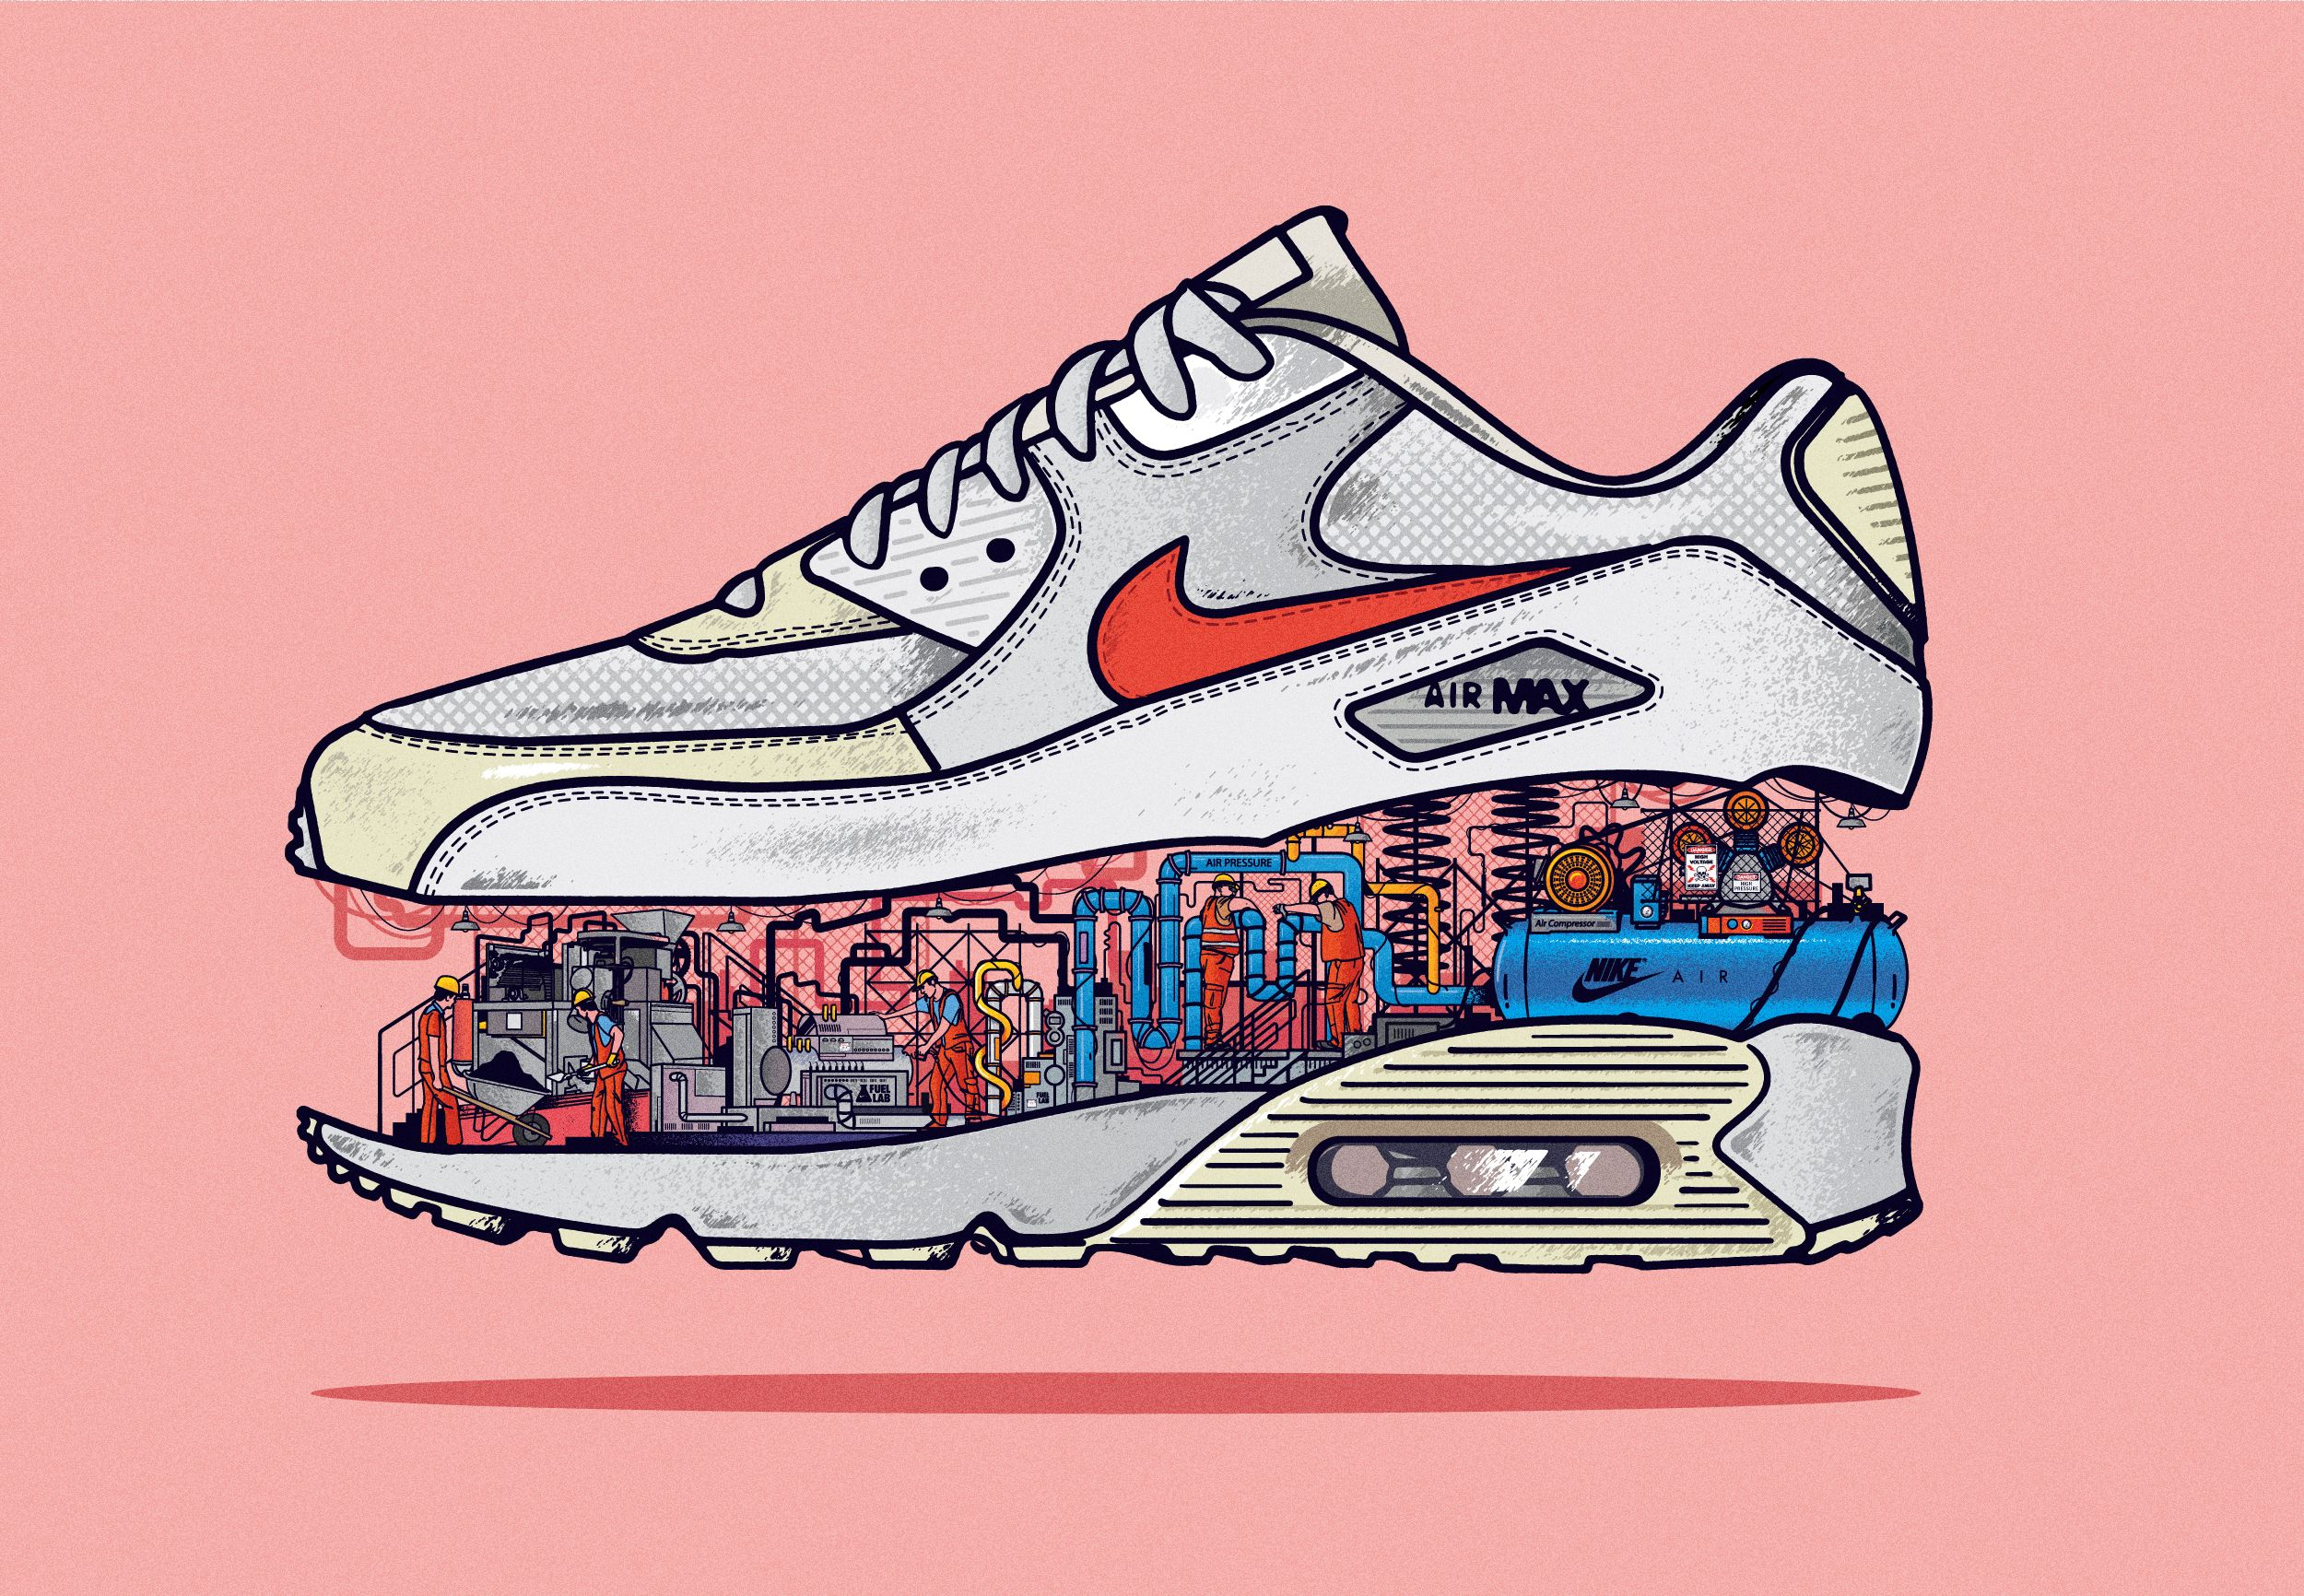 san francisco cd376 5d3f3 Sneakers Under Construction by Musketon – Fubiz Media Illustrator, Vector  Art, Air Max Sneakers